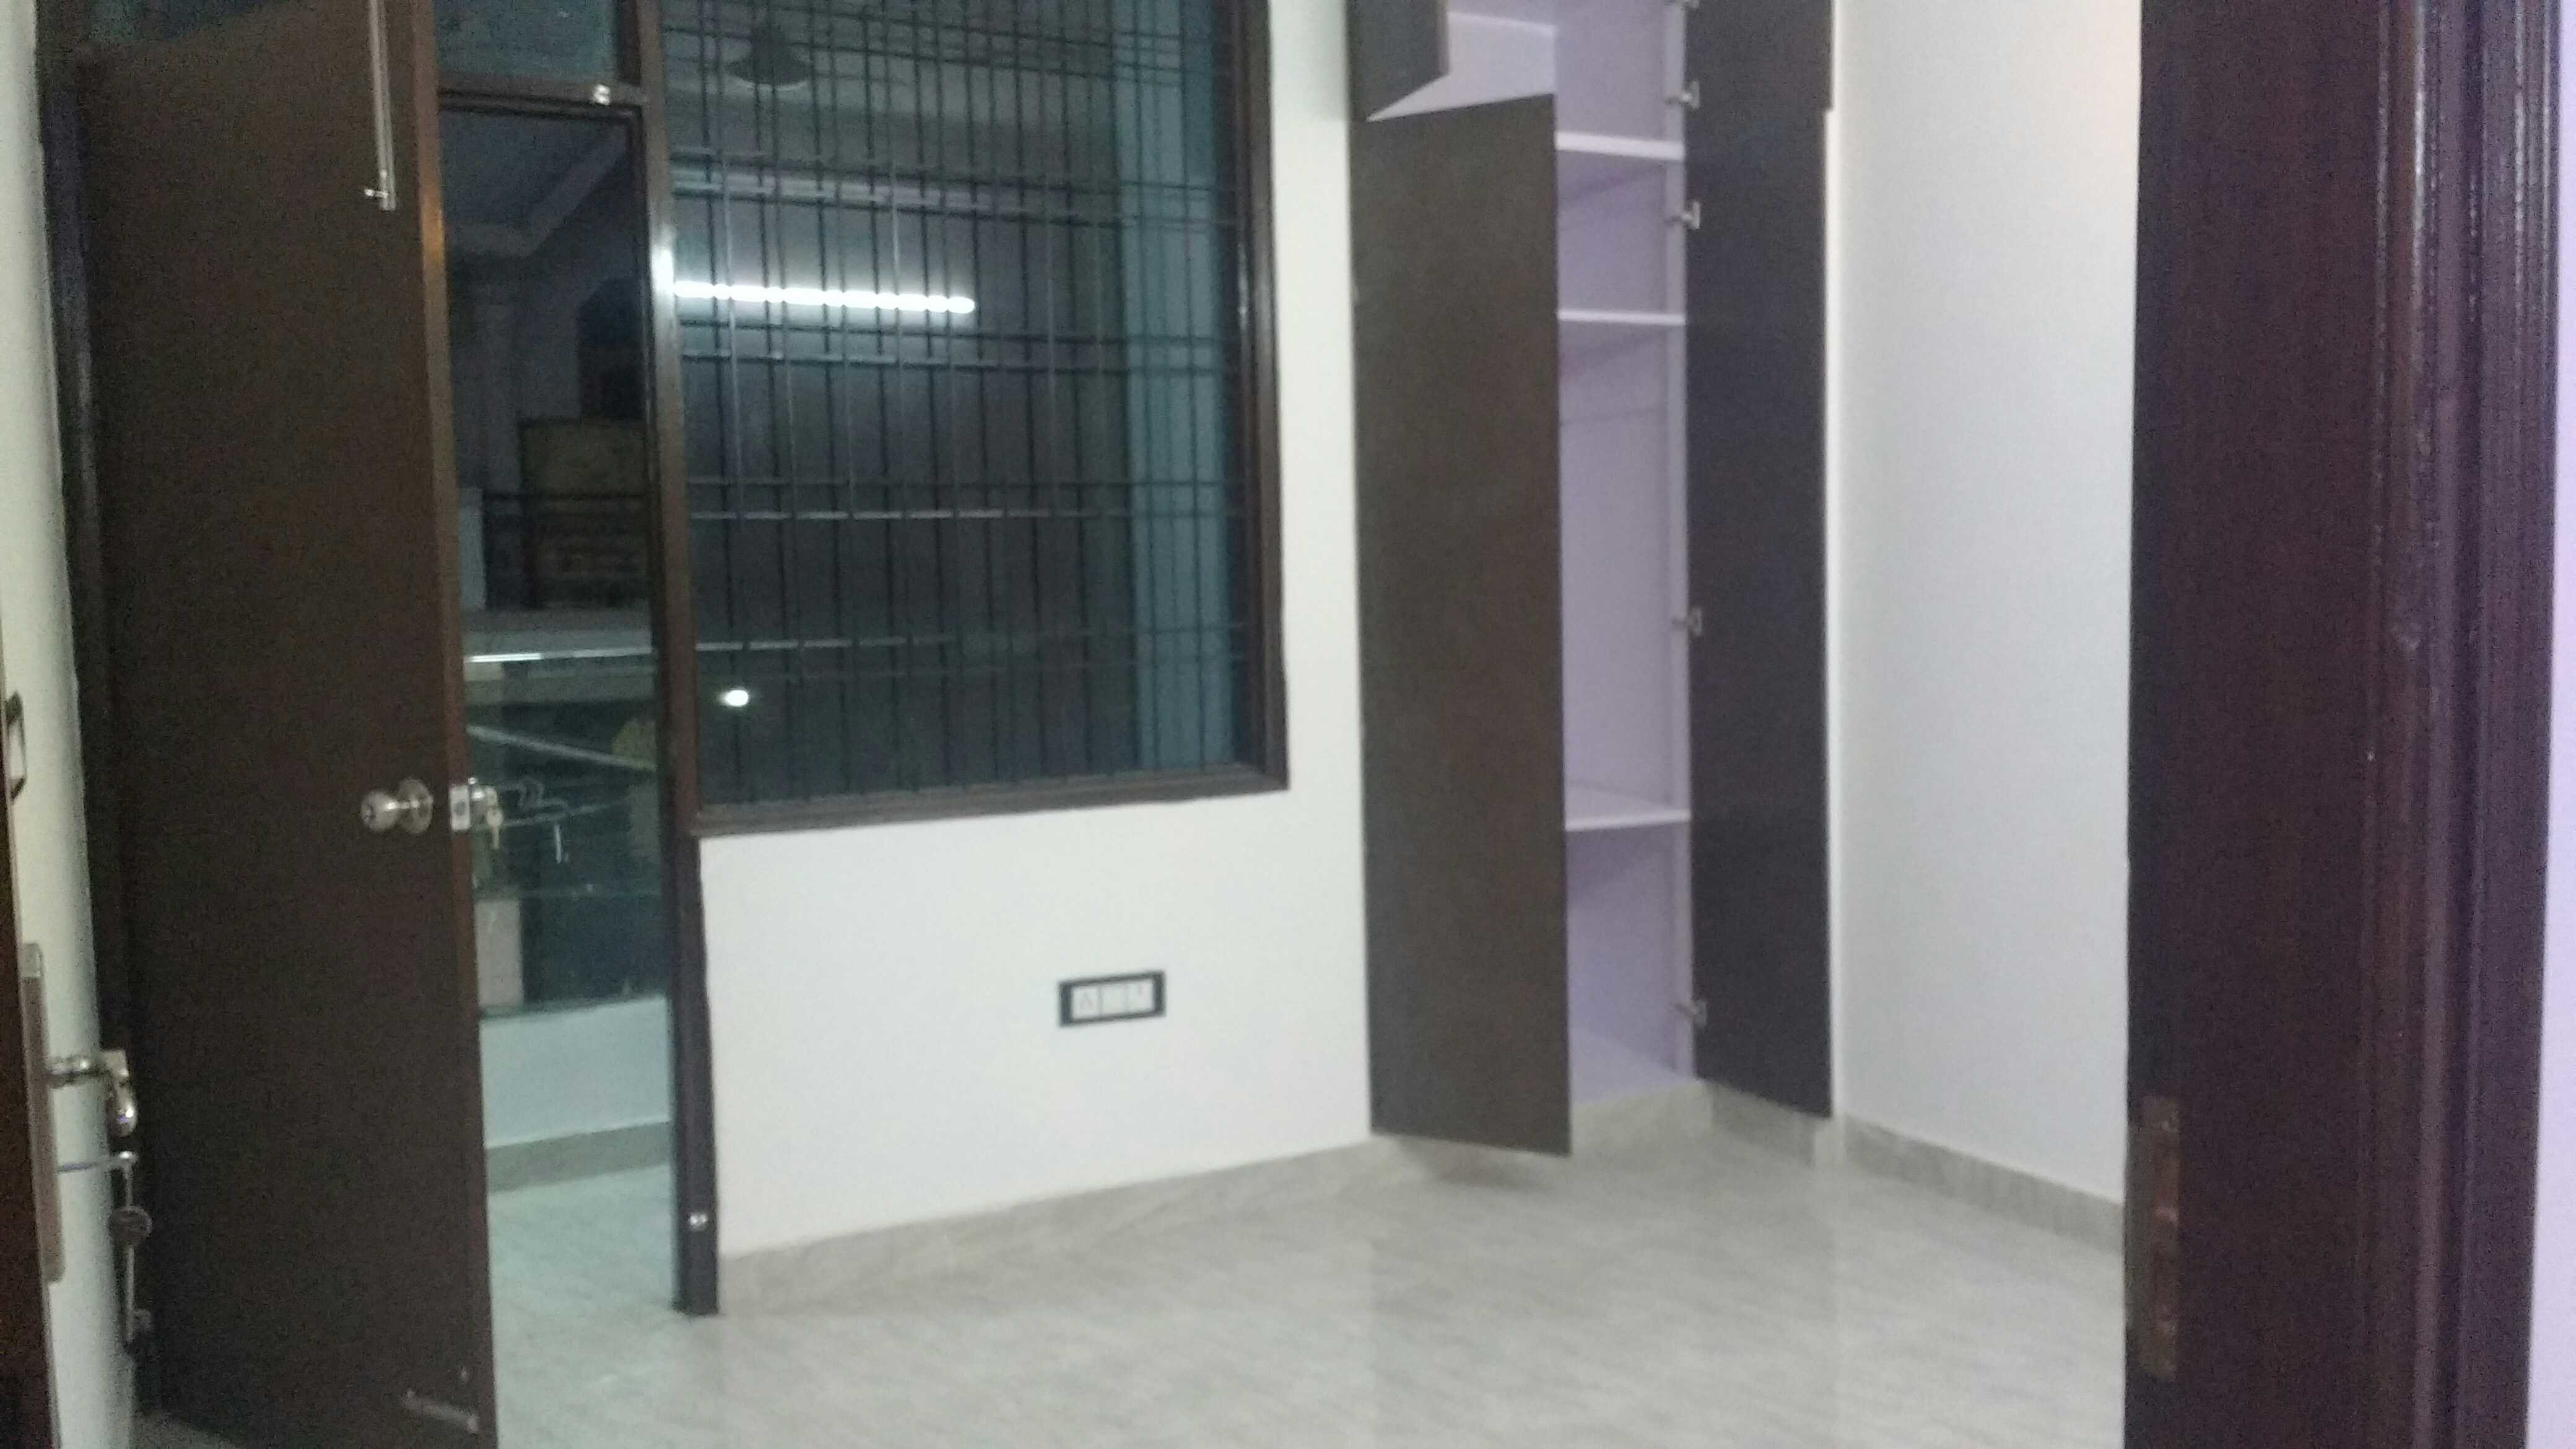 1350 sq ft 2BHK 2BHK+2T (1,350 sq ft) Property By Daksh Property In JVTS Gardens, Chattarpur